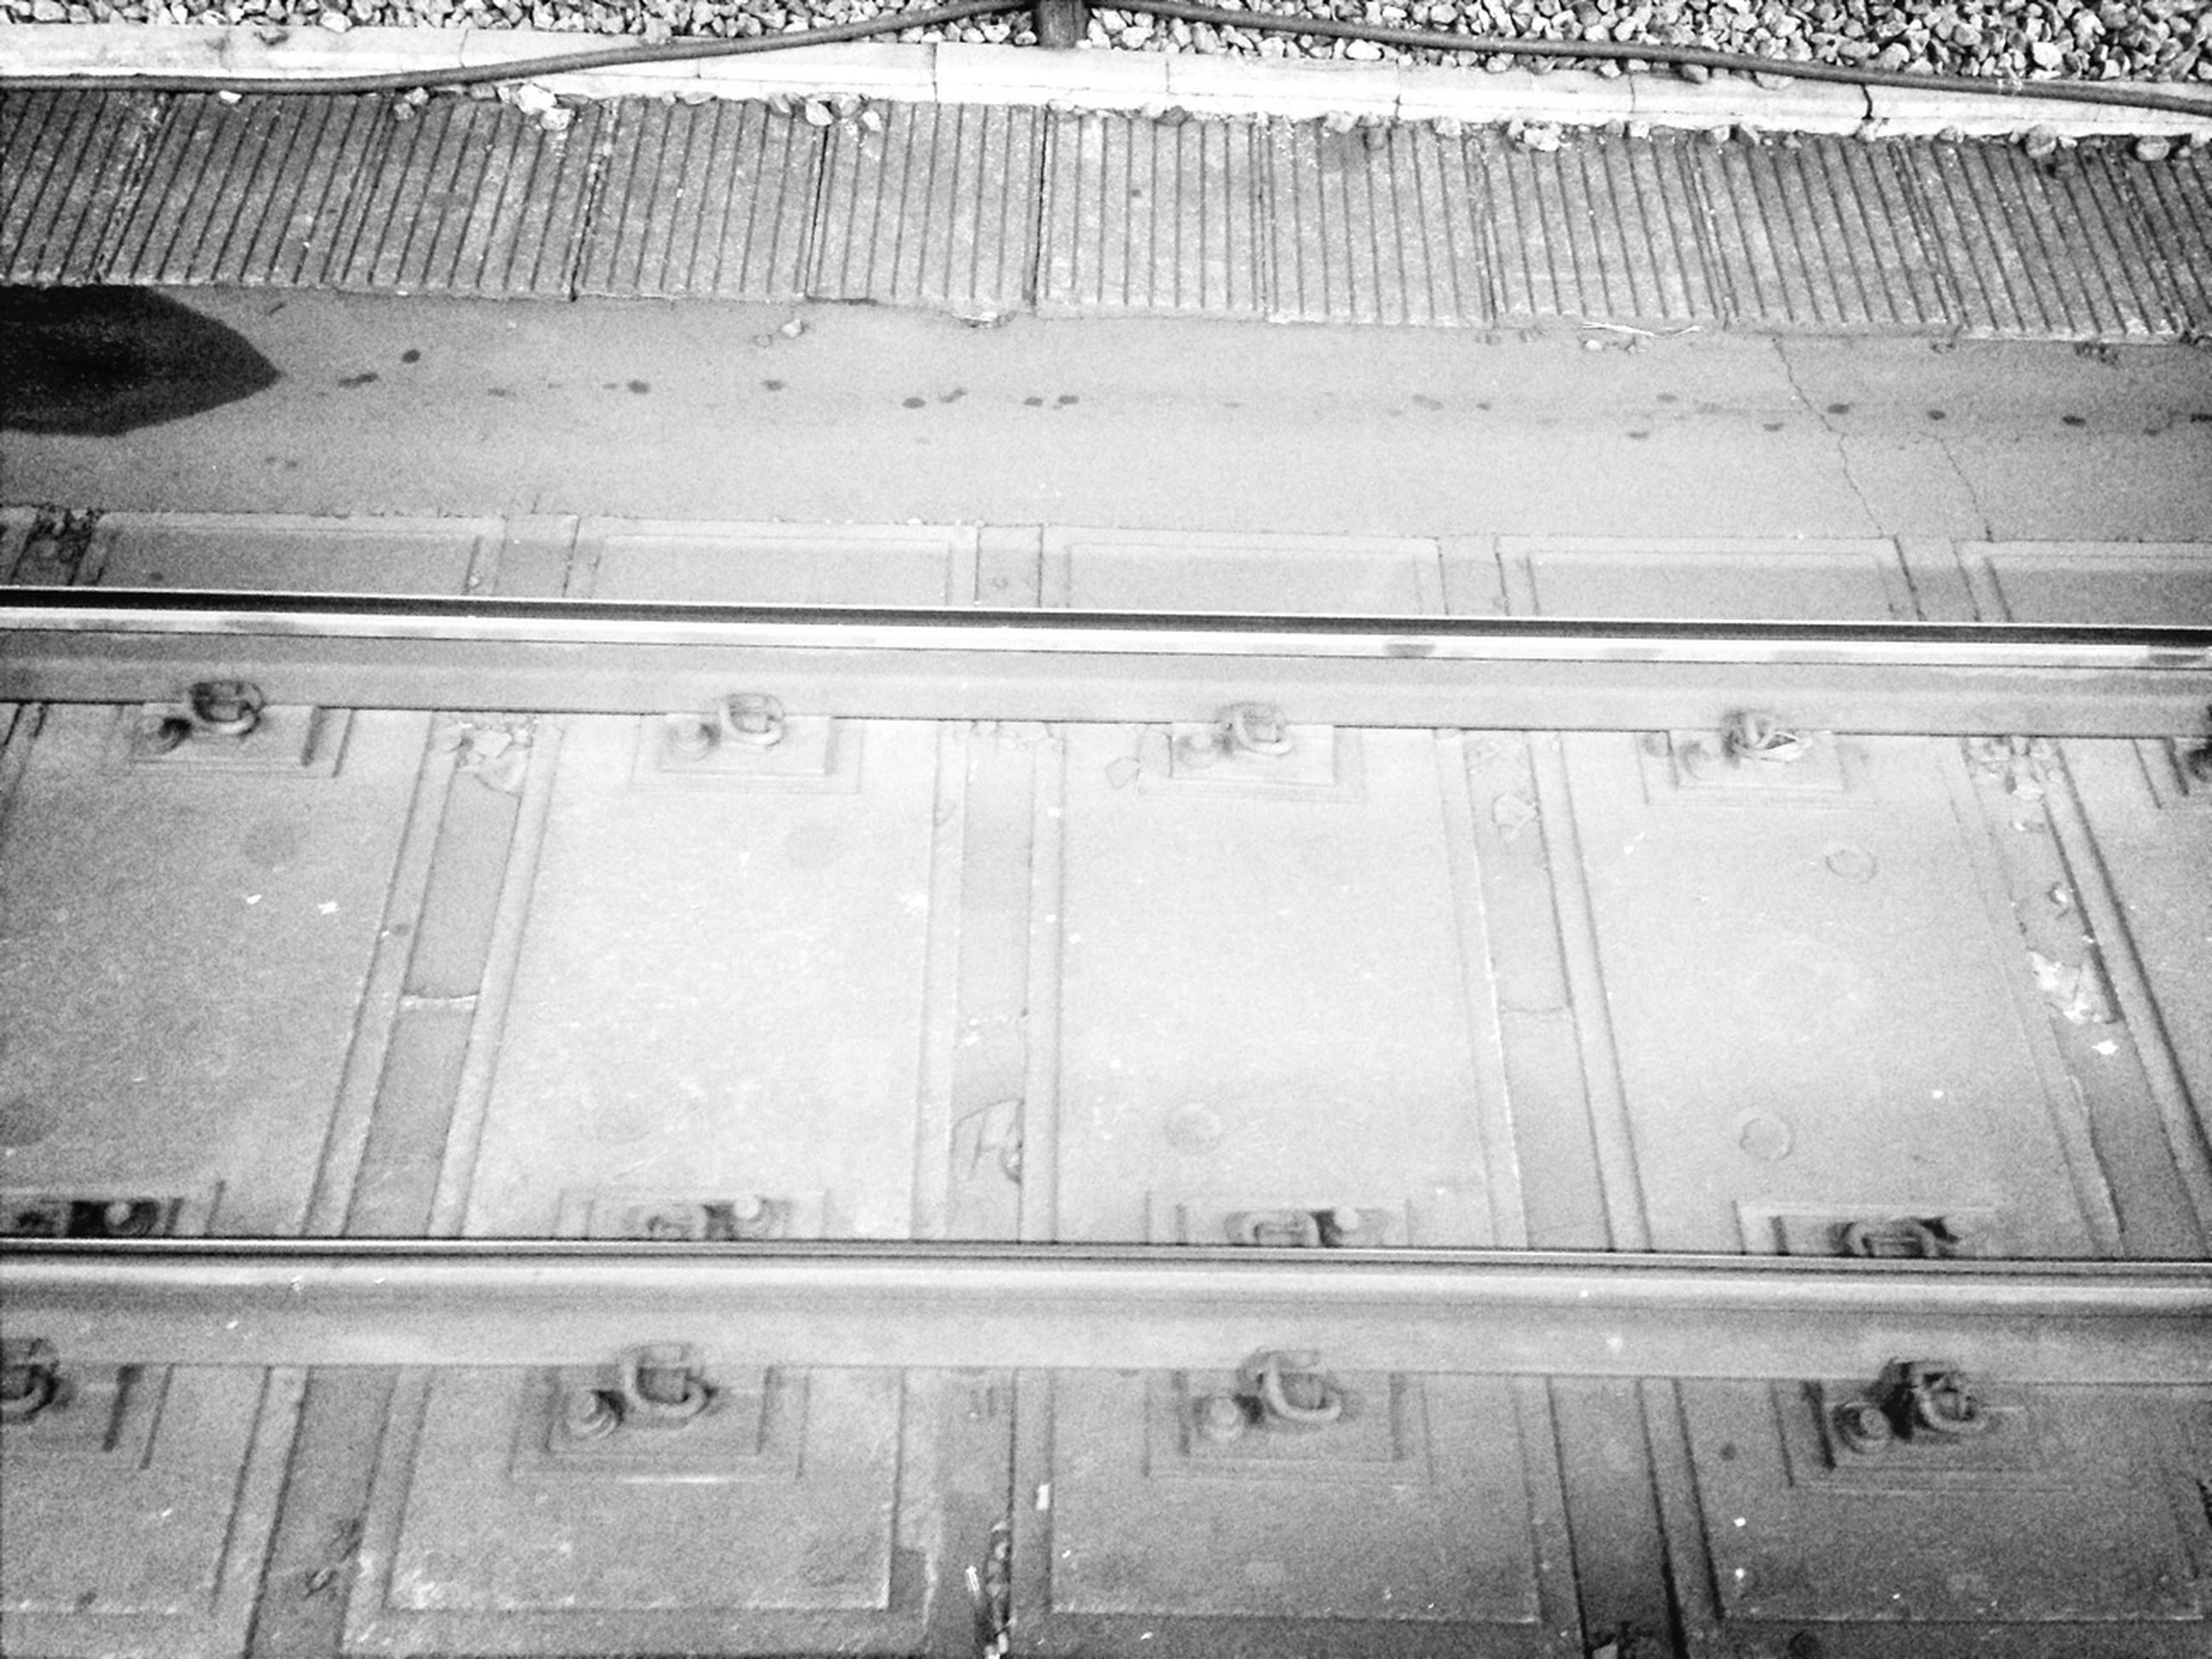 transportation, high angle view, indoors, wet, mode of transport, water, day, public transportation, road, full frame, street, travel, rail transportation, land vehicle, reflection, backgrounds, no people, metal, glass - material